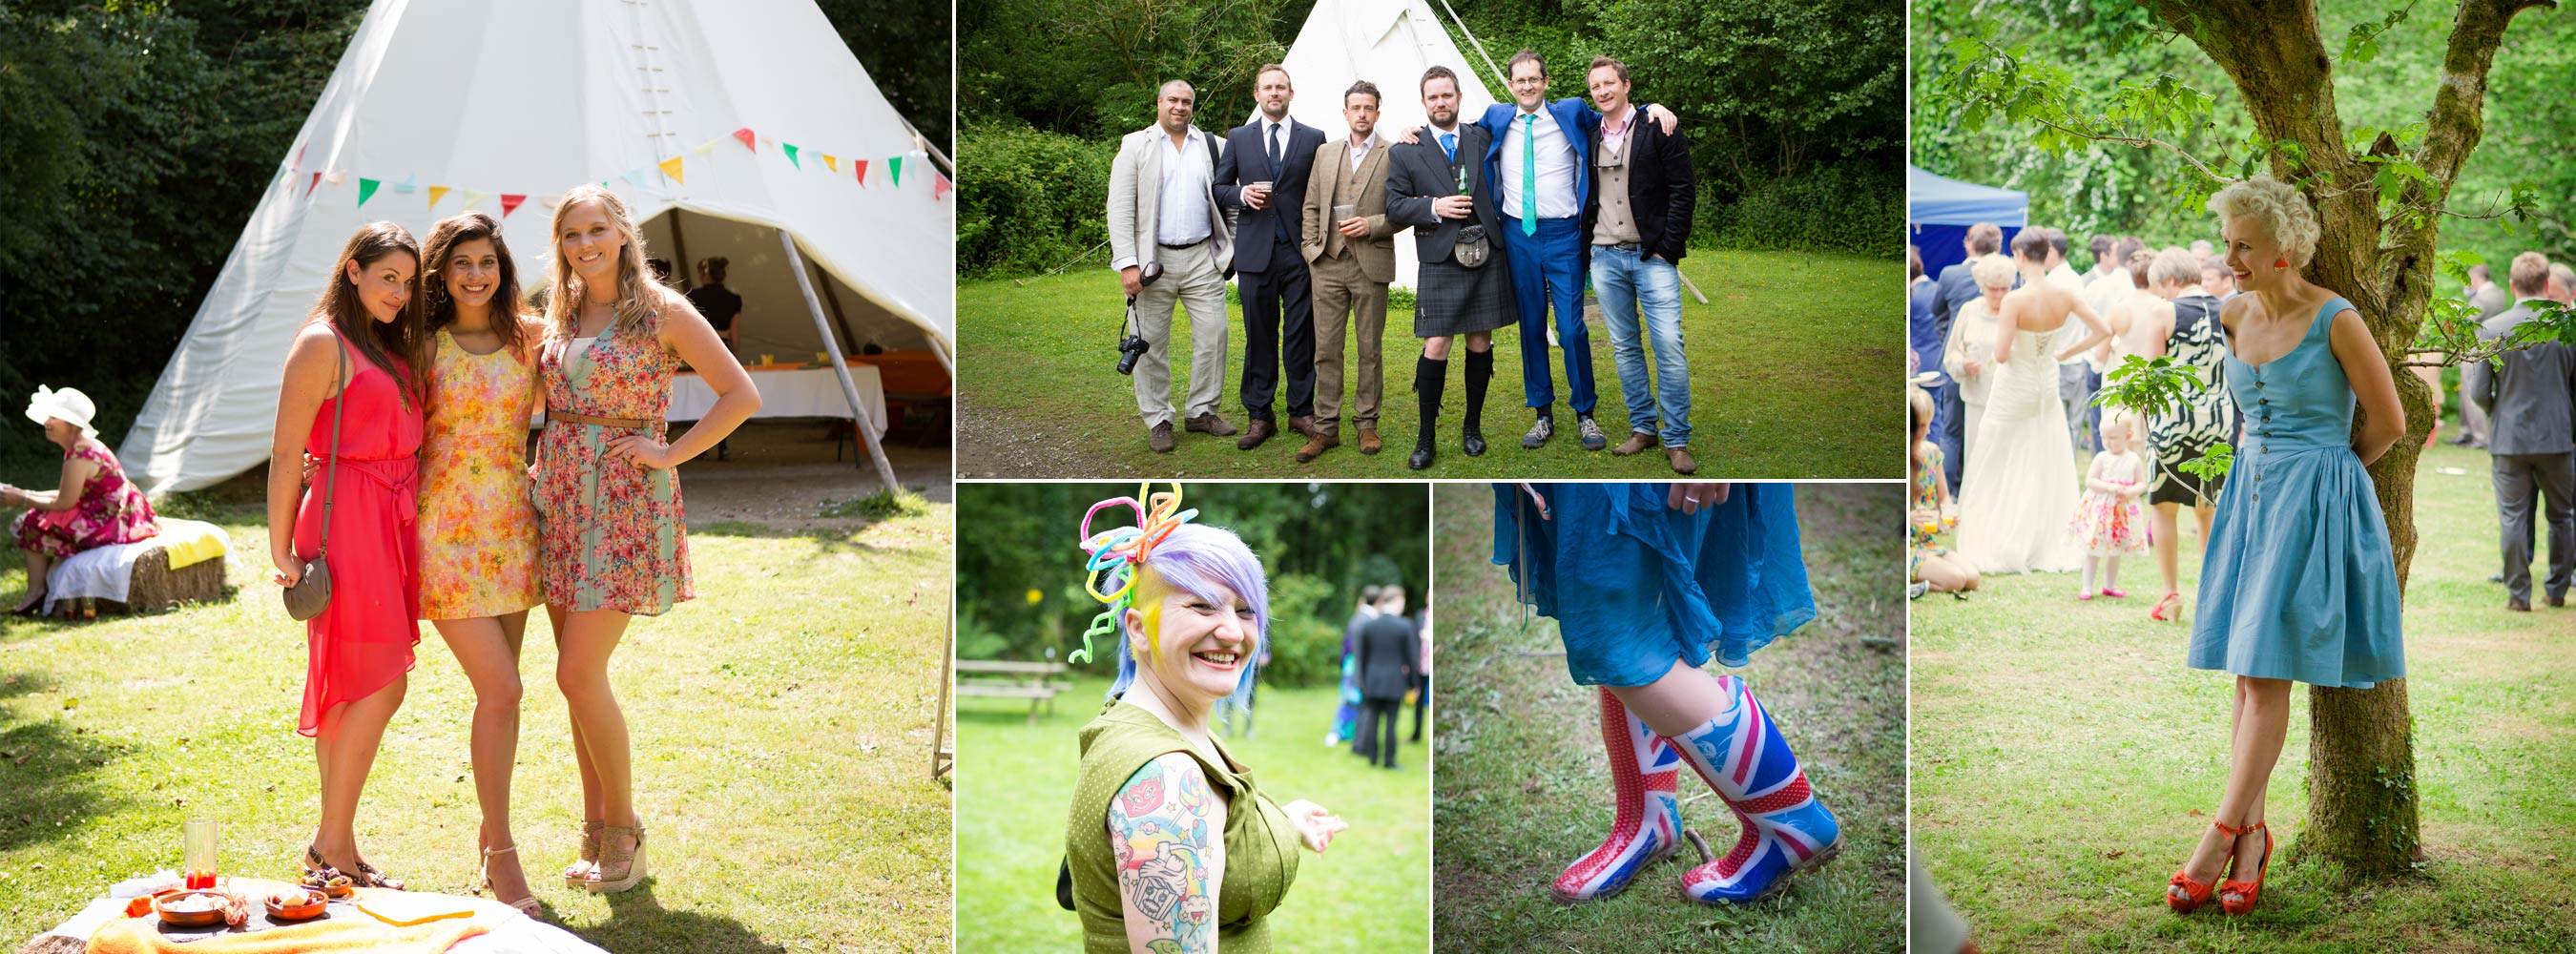 Wedding Guests - what to wear, patriotic floral to vintage